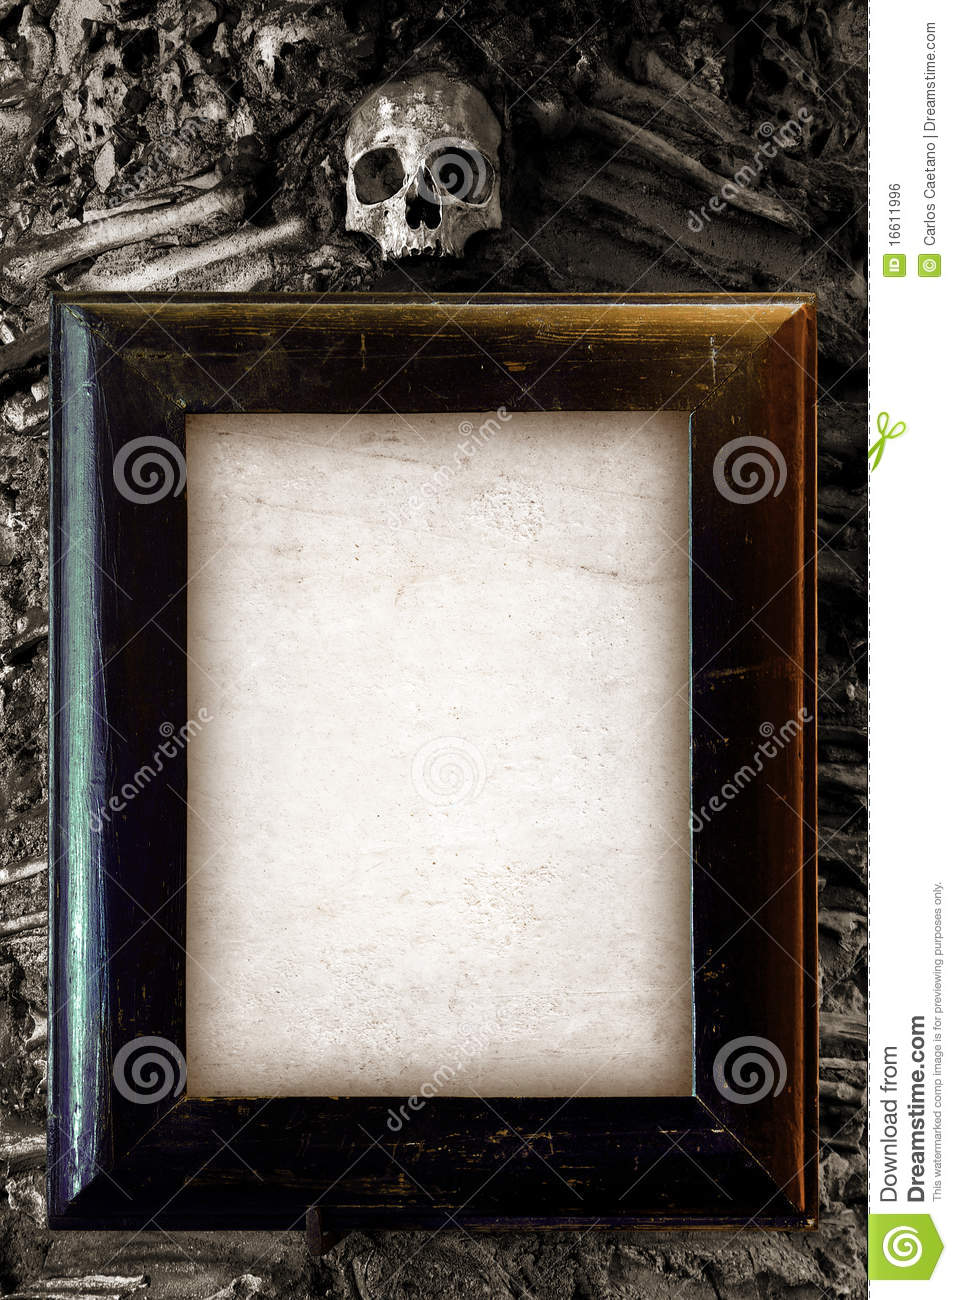 Memo Board Scary Frame Stock Photo. Image Of Evil, Creeps